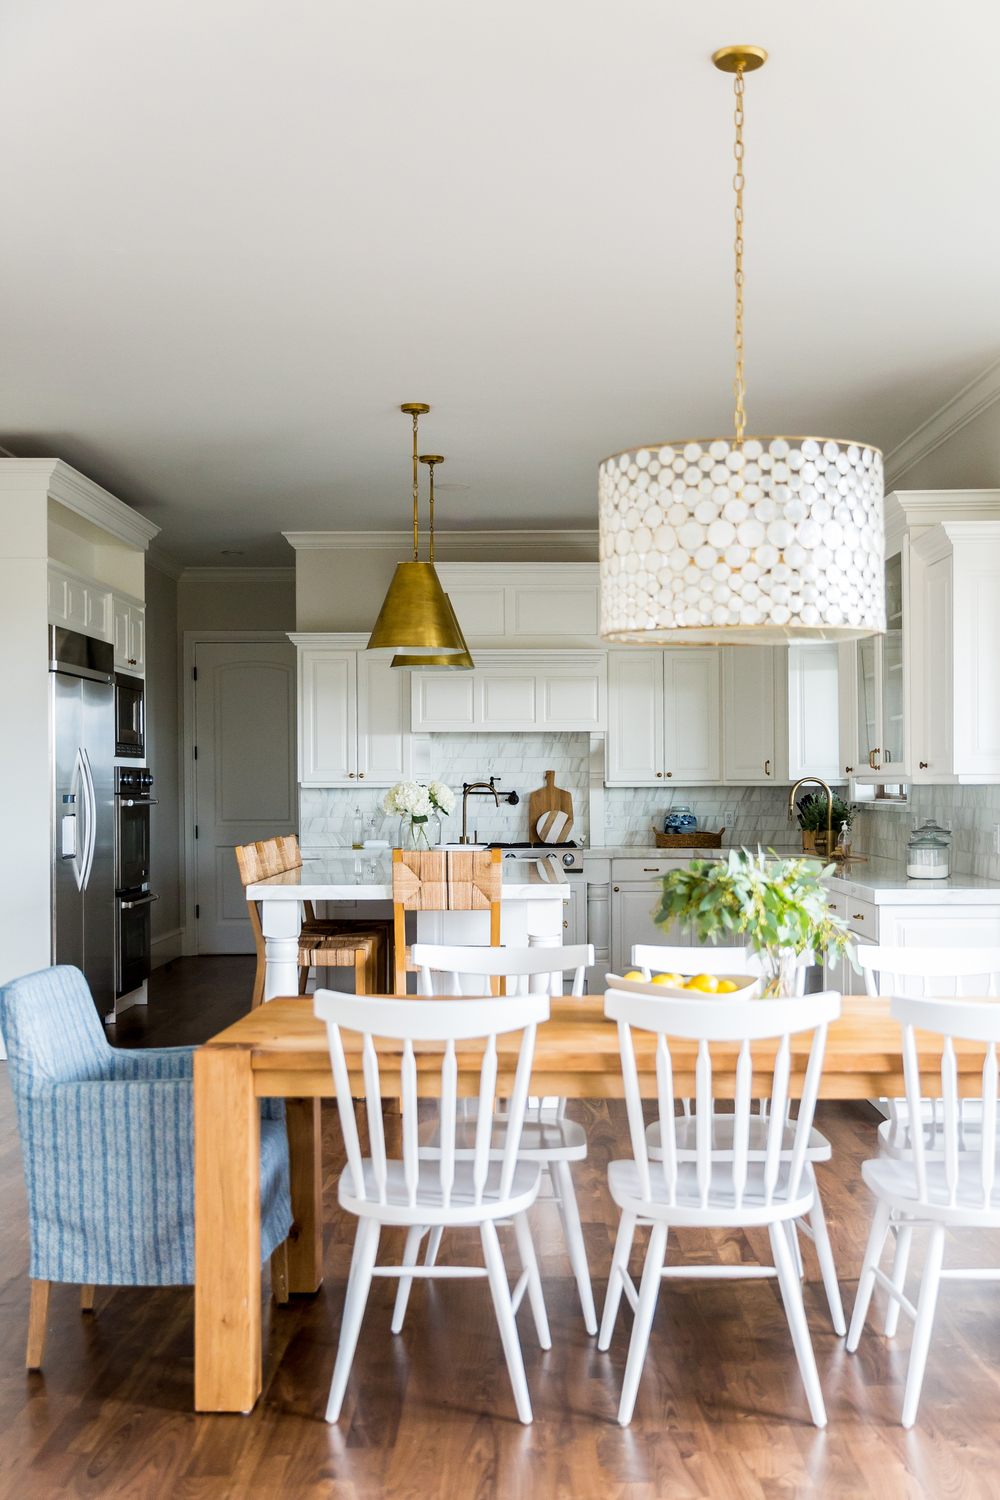 1Kitchen+makeover+tour+by+Studio+McGee.jpg